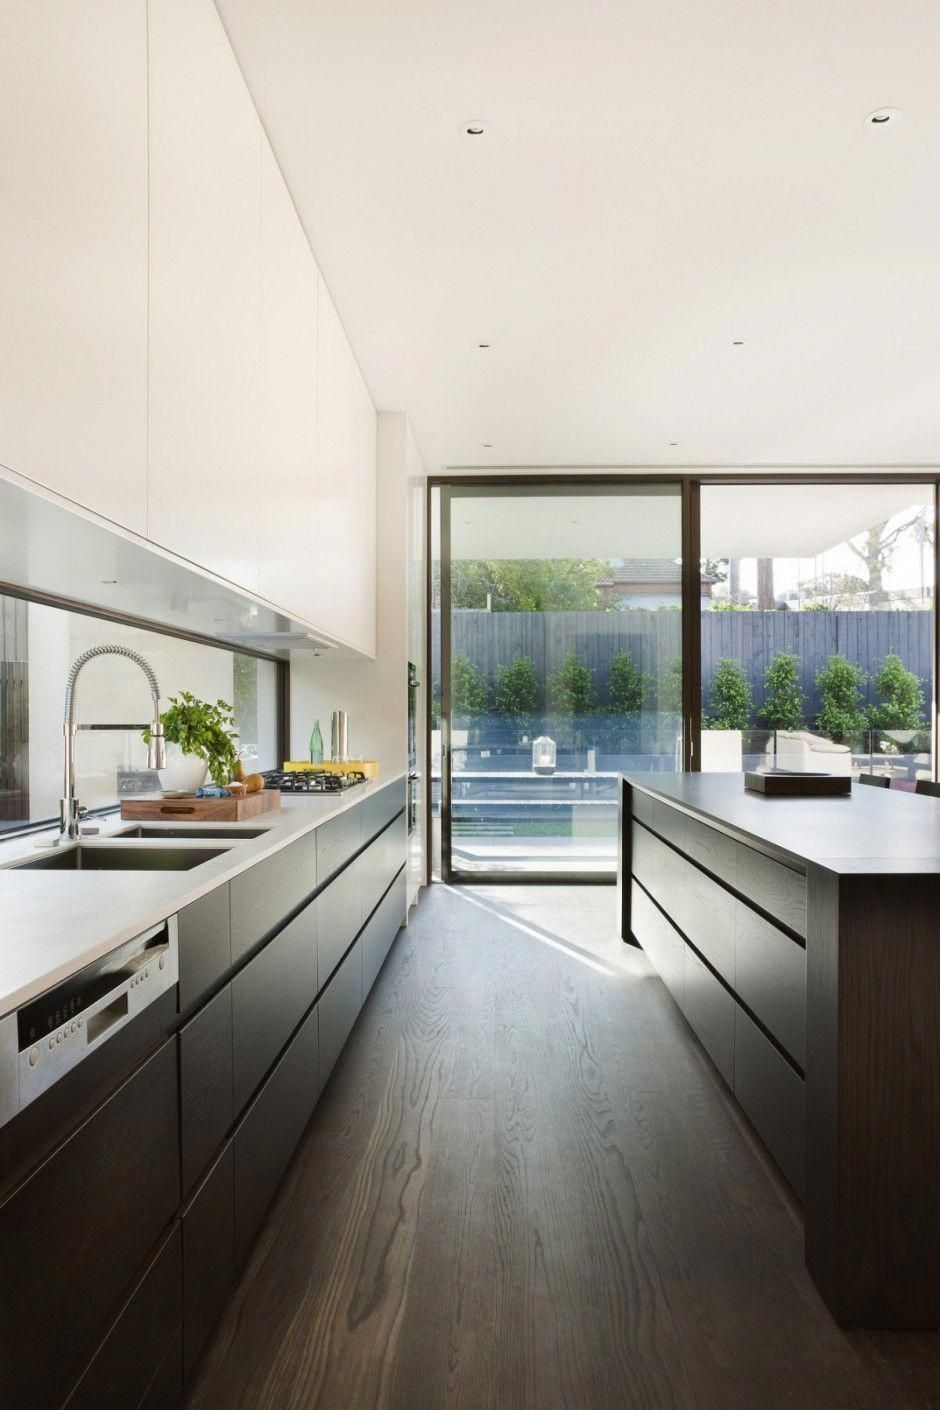 Gorgeous house oriented towards sustainable design malvern house by lubelso modernkitchen